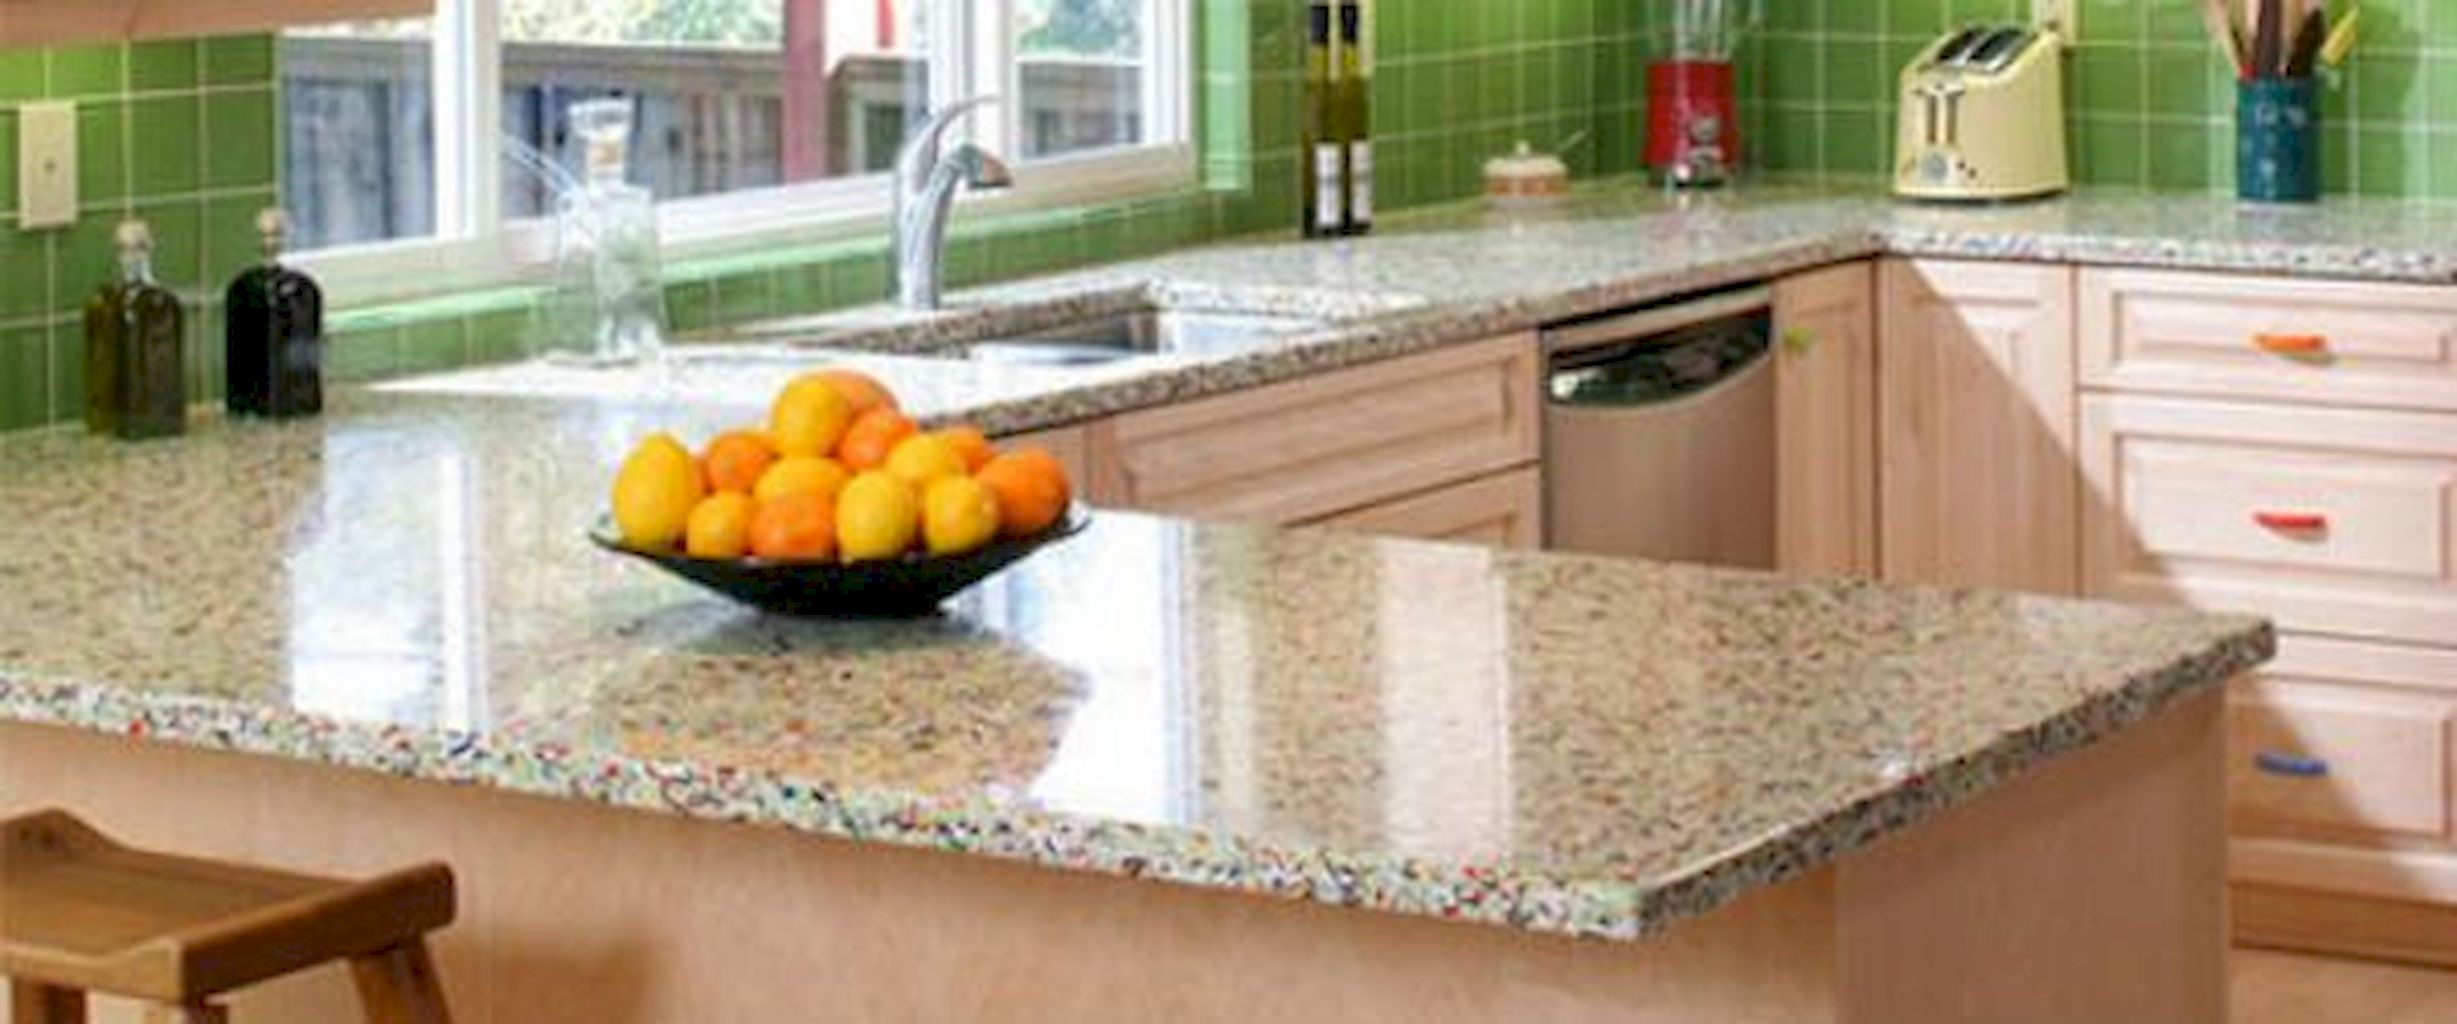 Eco Friendly Kitchen Tile Design Ideas